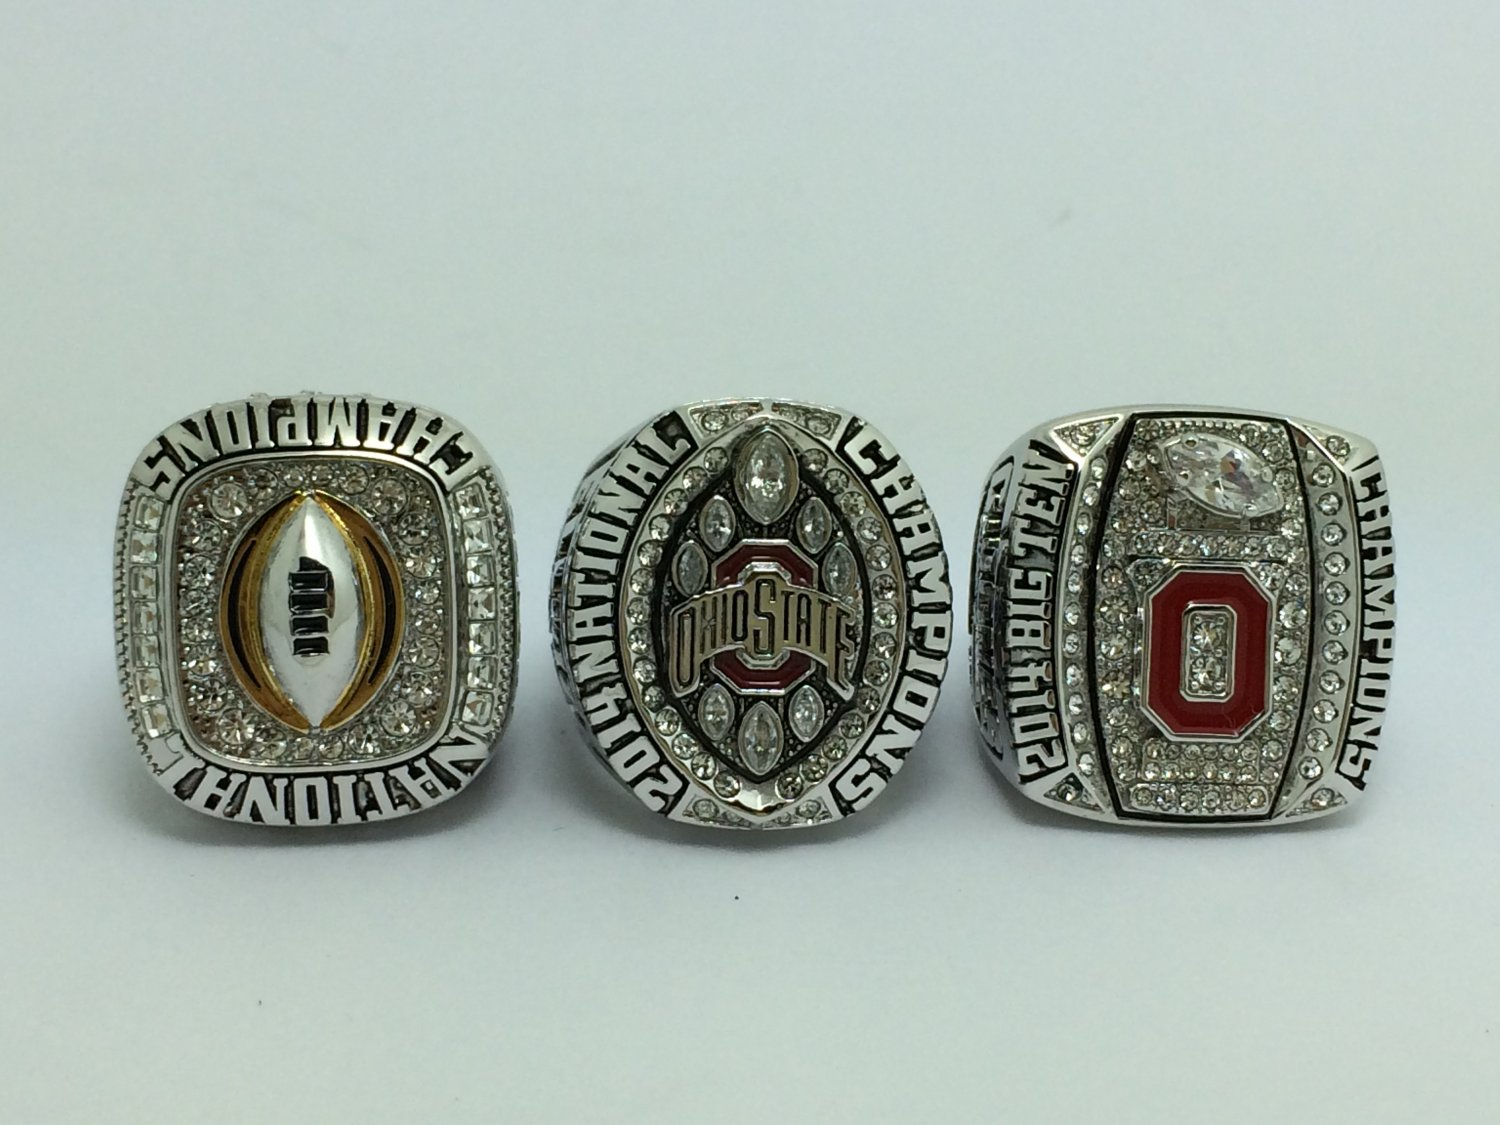 One Set 3PCS 2014-2015 Ohio State Buckeyes College Championship Ring 8-14 Size